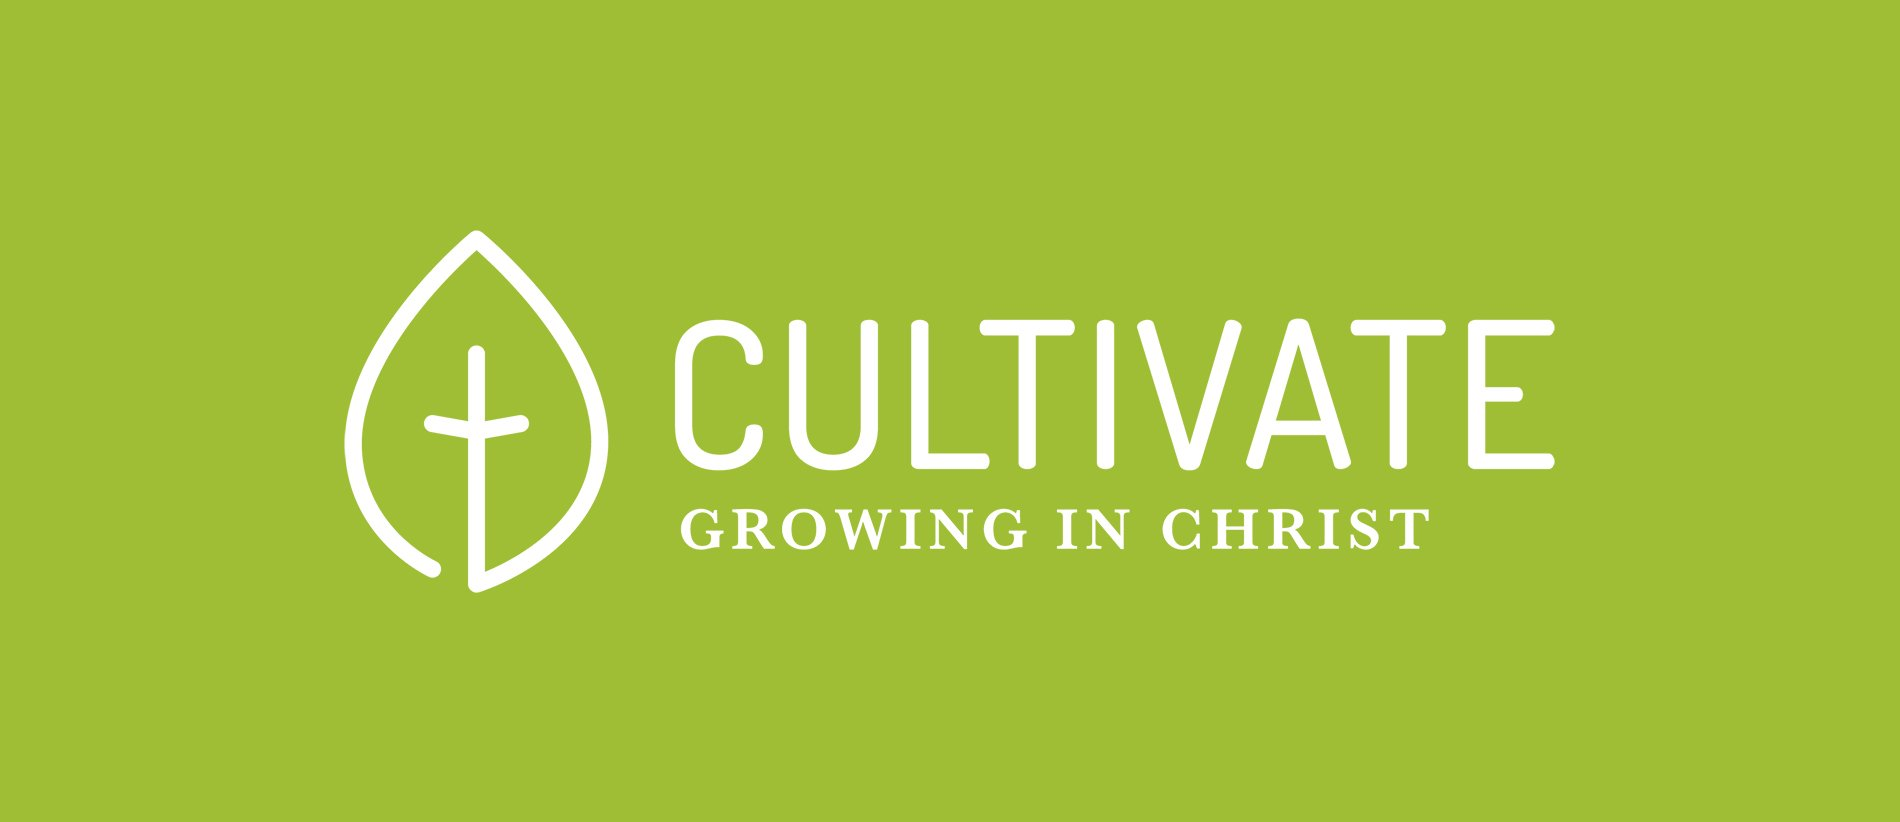 AM-Project-Logos-Cultivate1